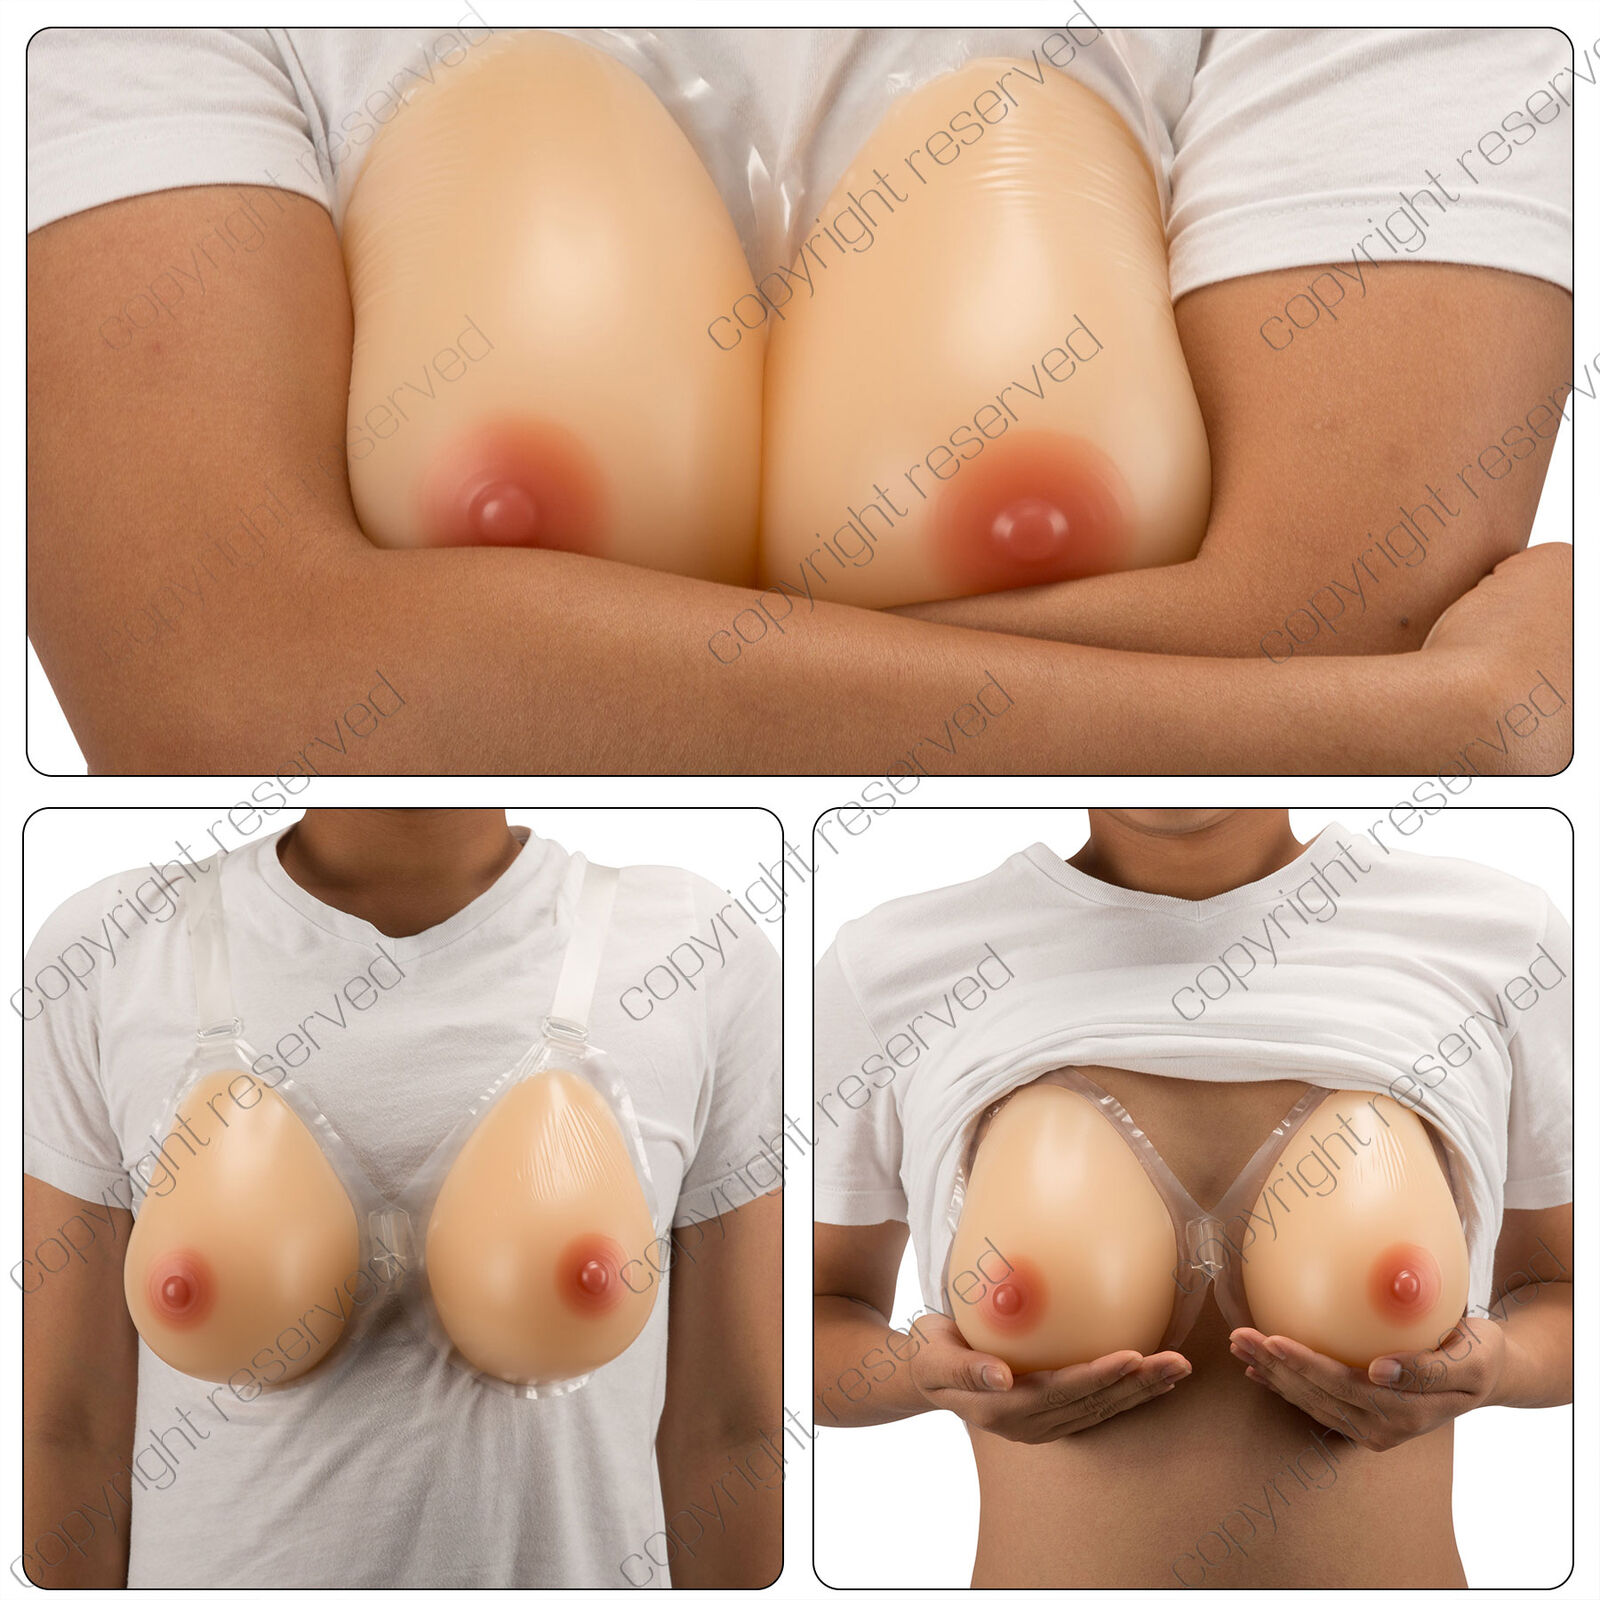 Enhancer Fake D Cup Breast Forms False Silicone Boobs Cosplay Cross Dresser Bra